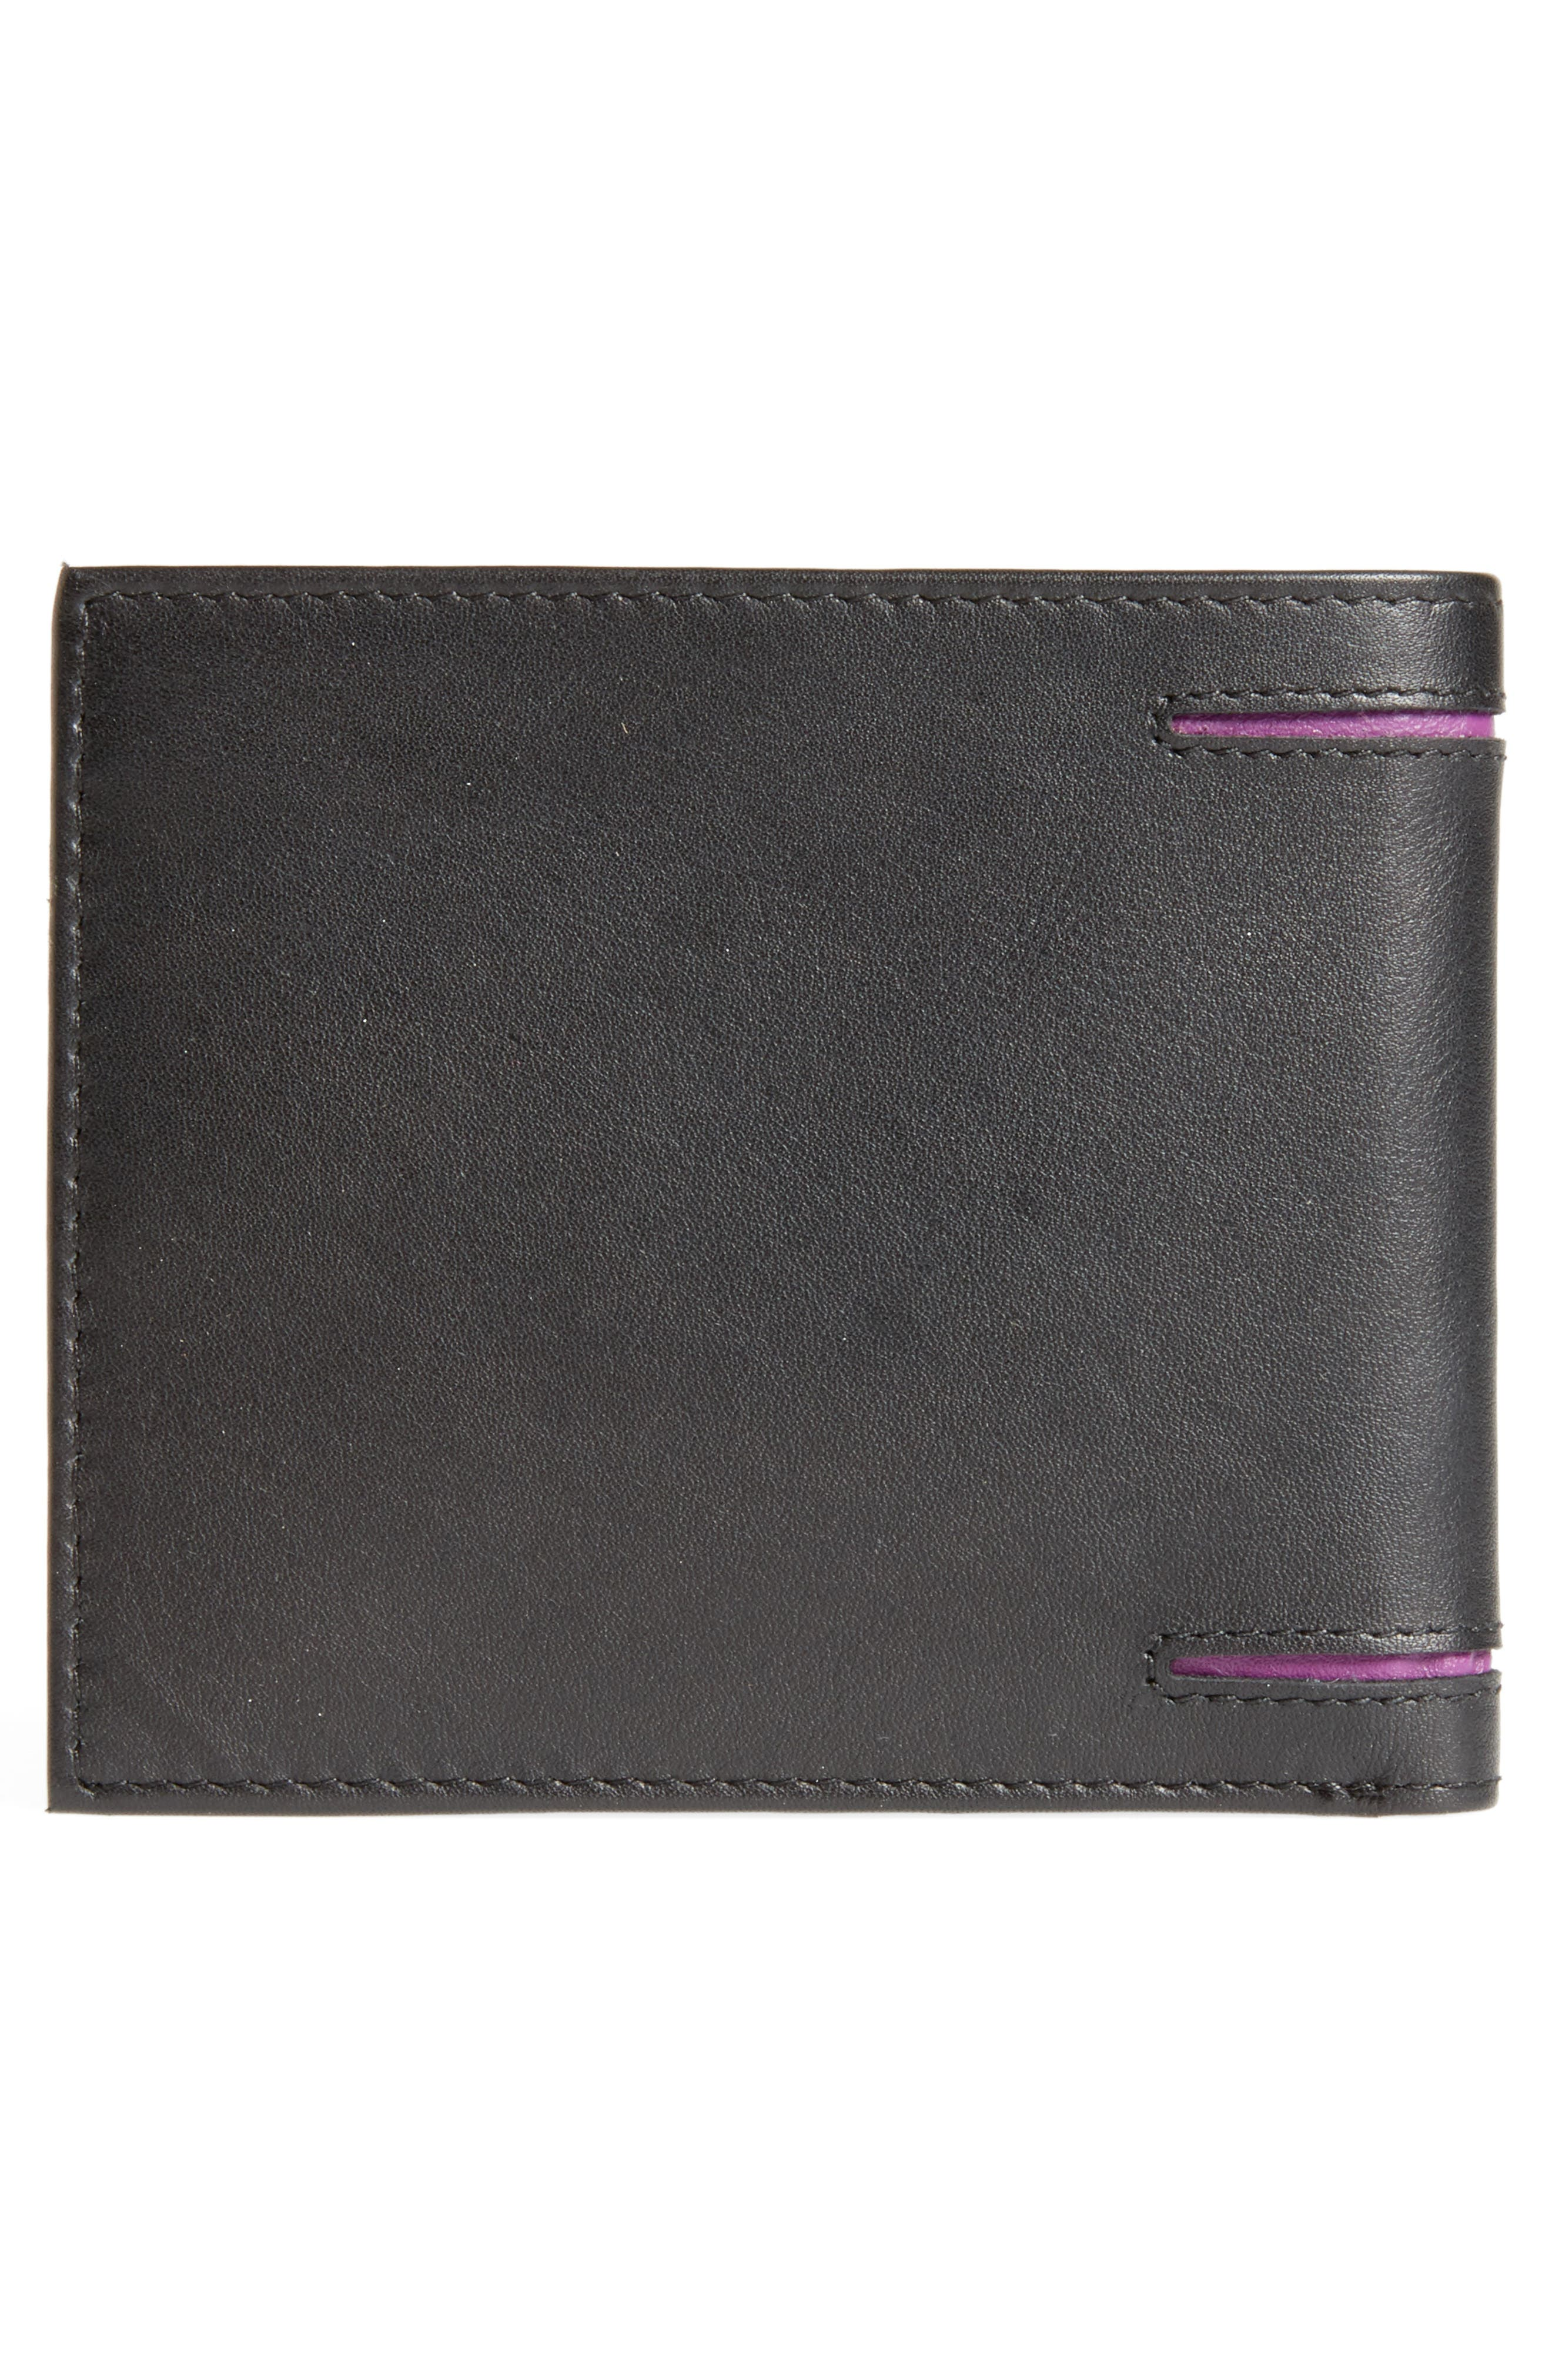 Figgy Inset Spine Leather Wallet,                             Alternate thumbnail 3, color,                             001